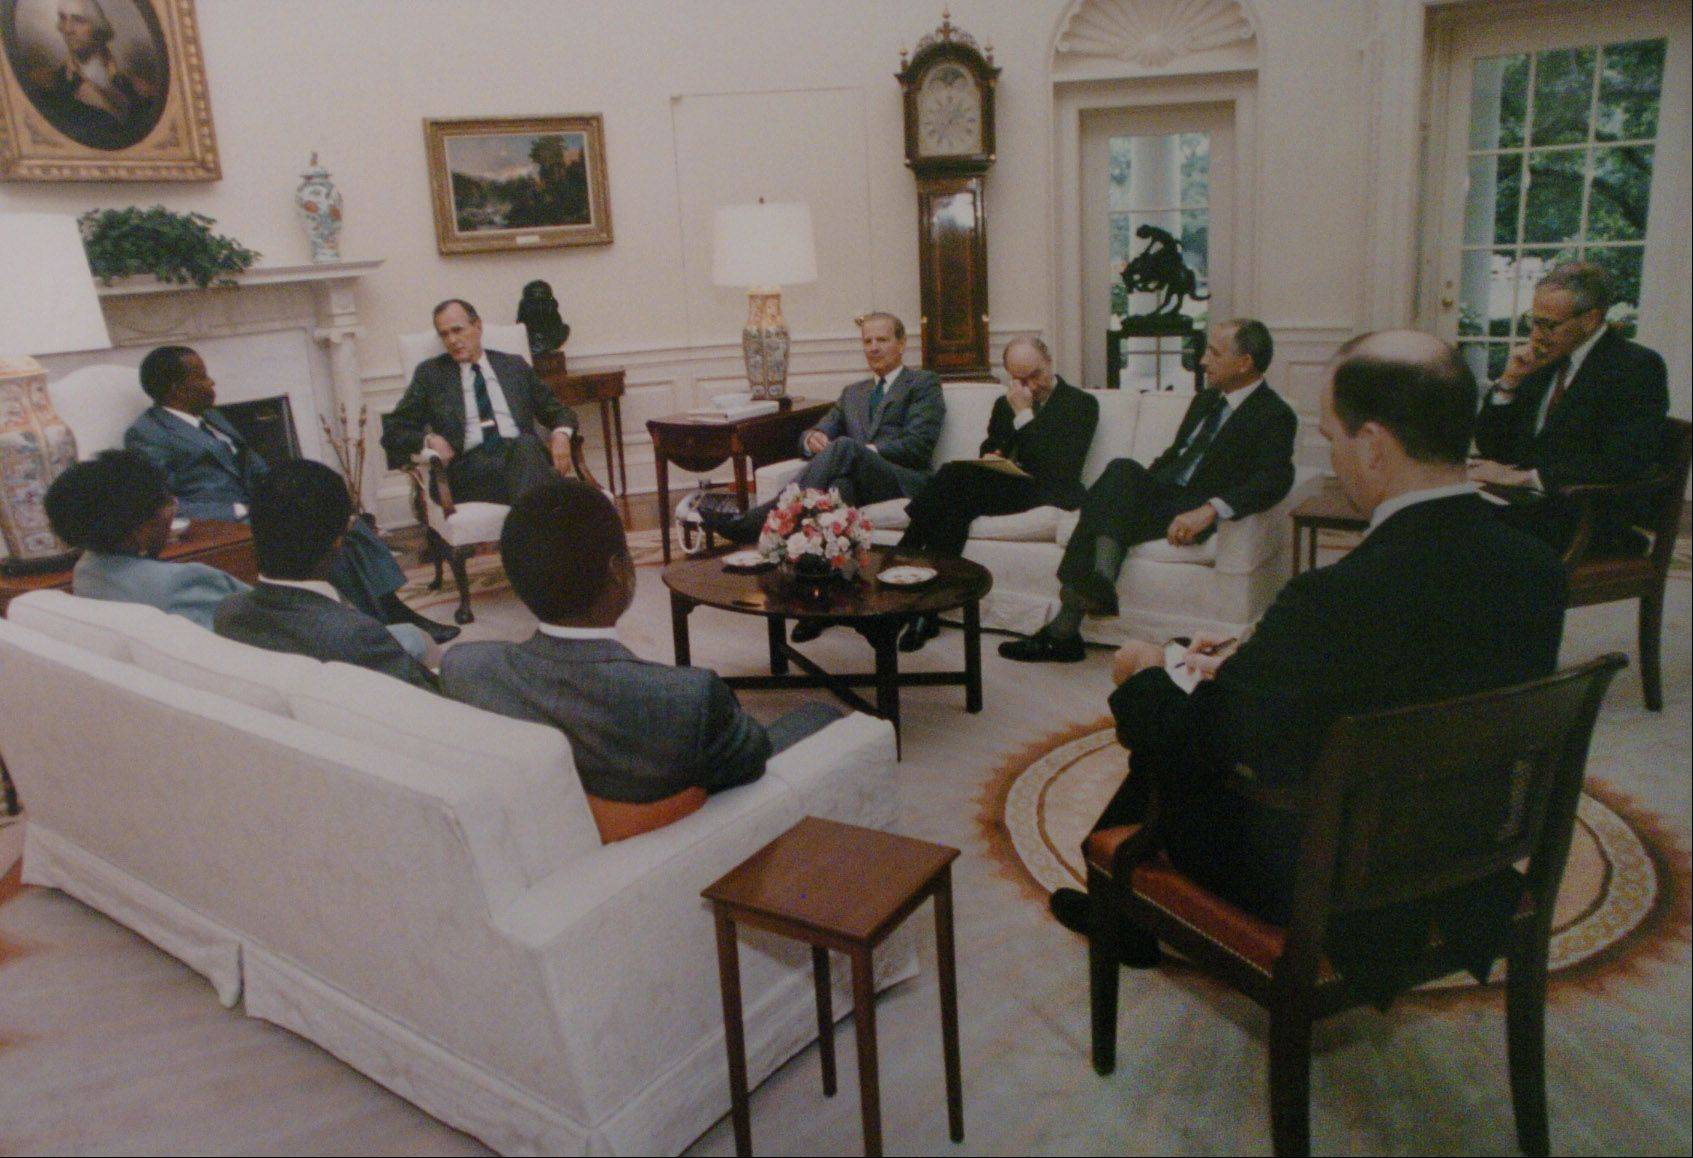 John Kordek, former U.S. Ambassador to Botswana, meets with a diplomatic delegation in the Oval Office with former President George H.W. Bush.